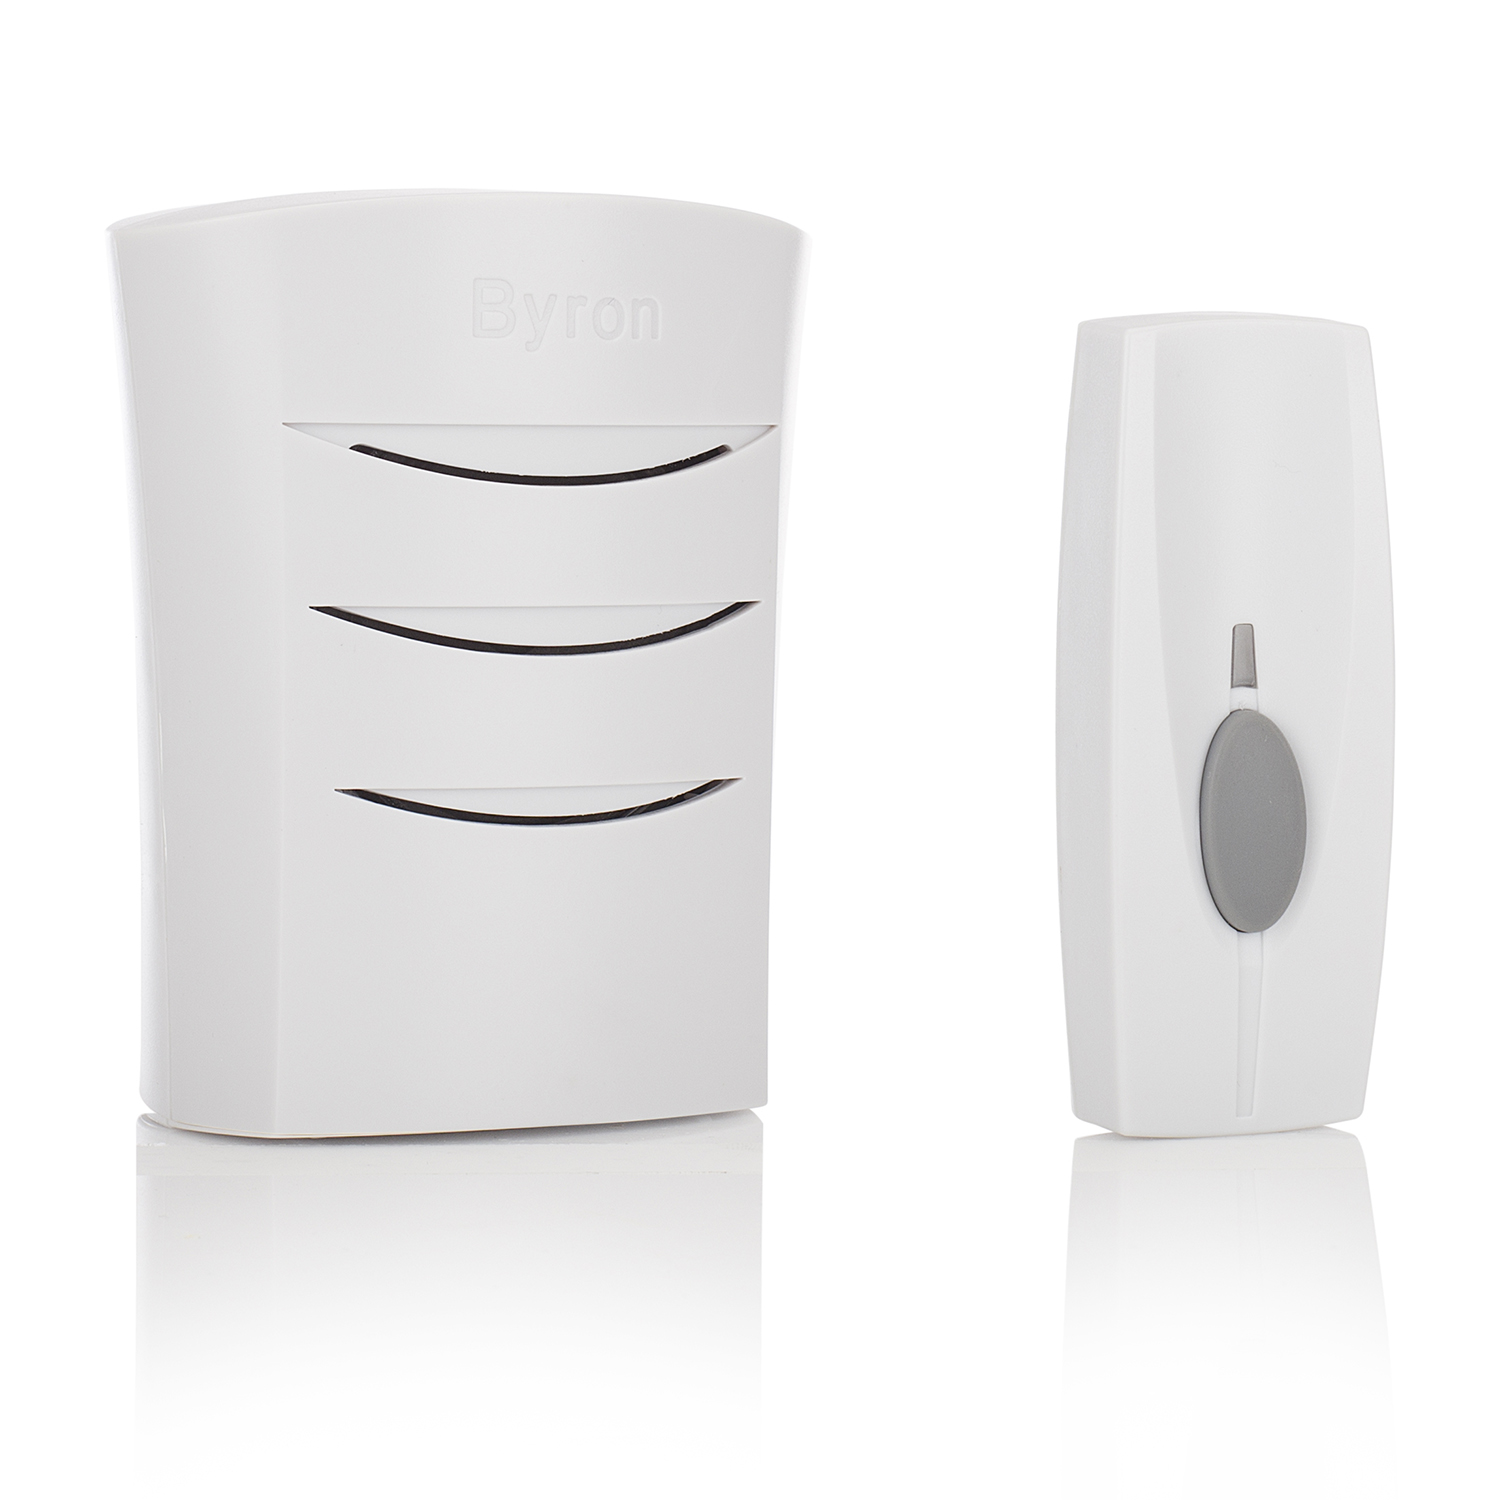 Image of Byron BY101 60m Wireless Doorbell with Portable Chime